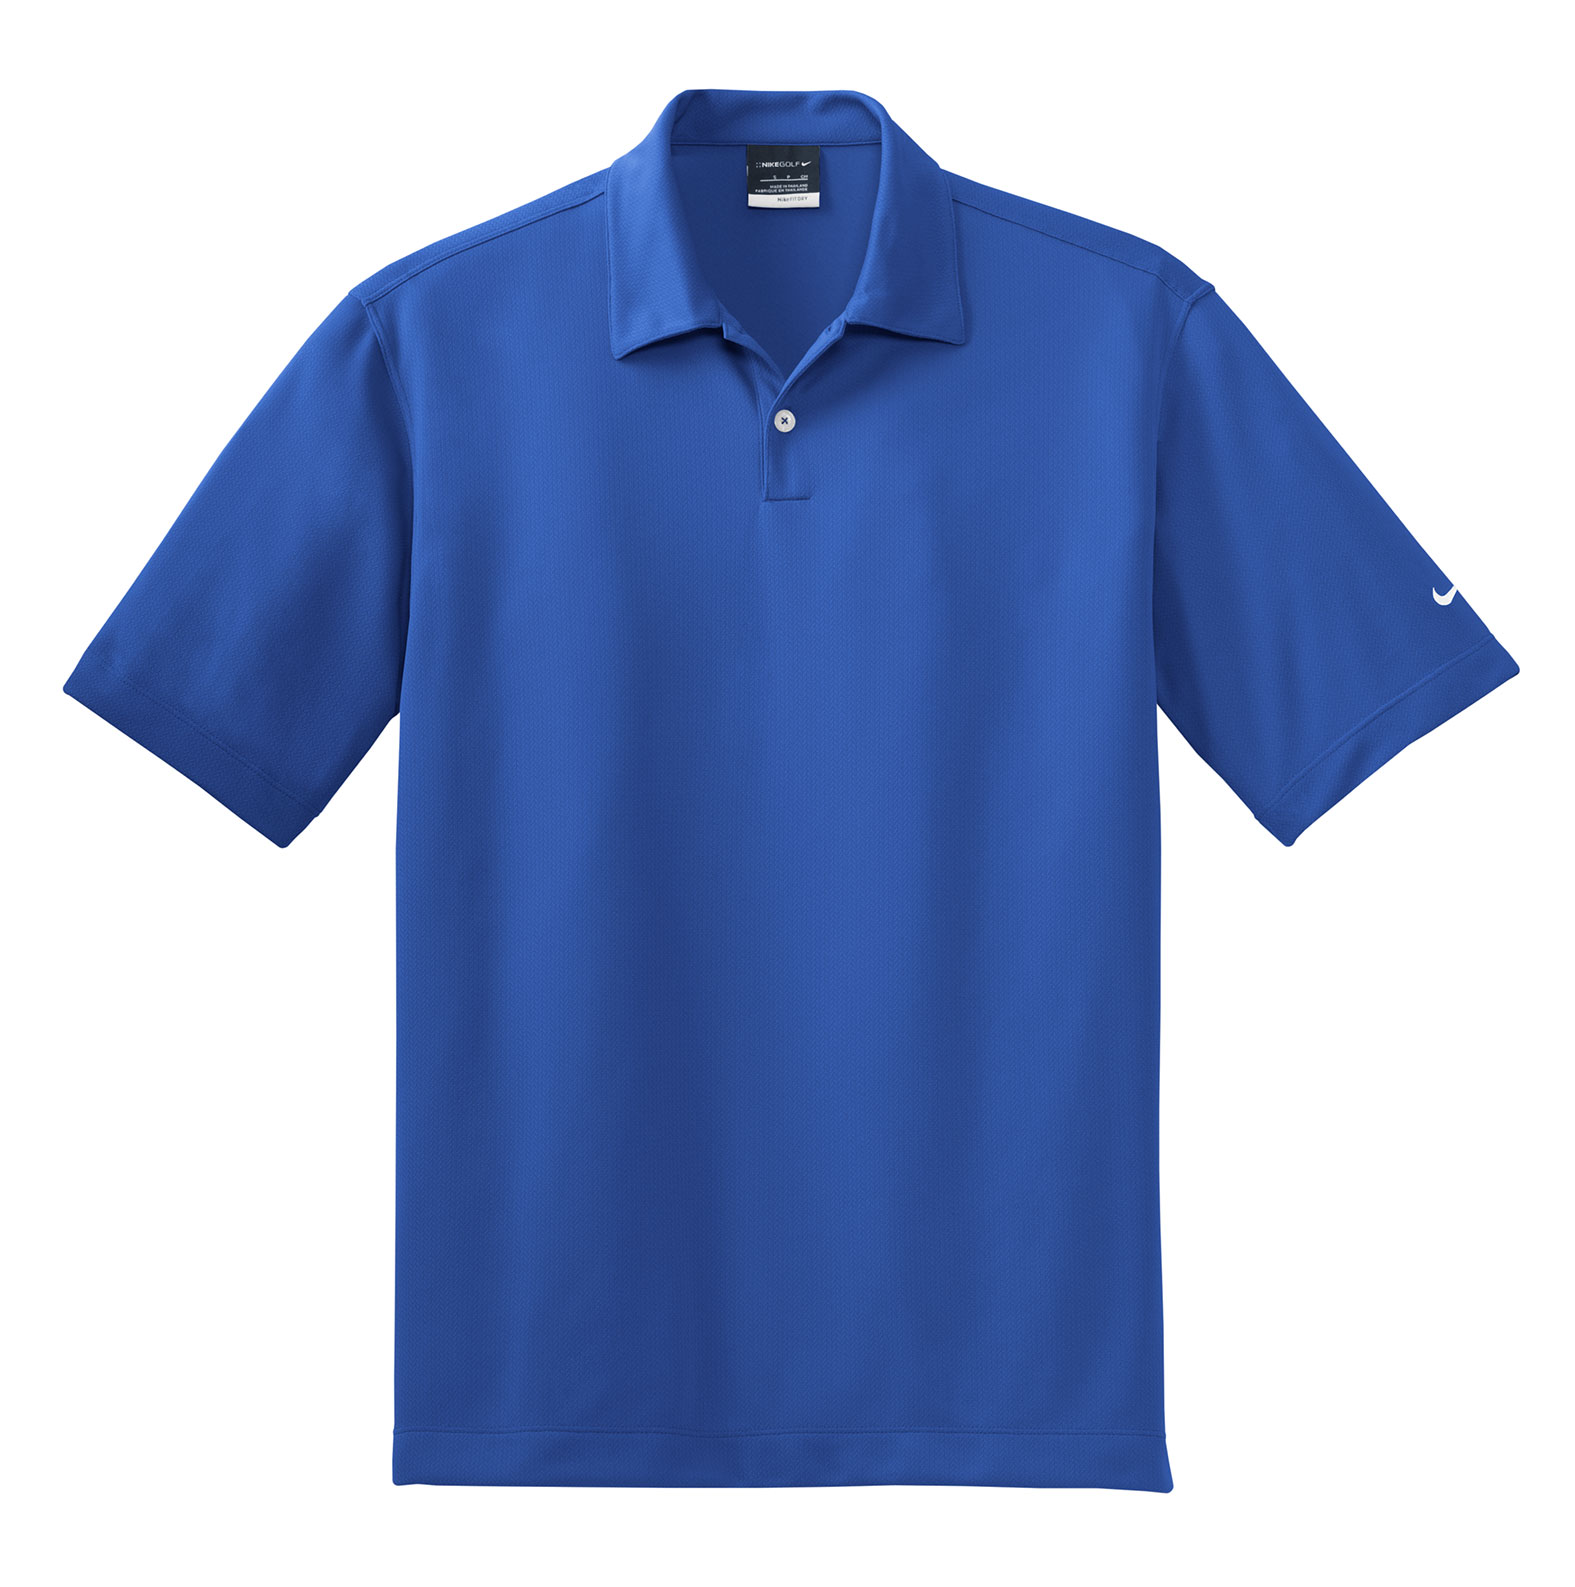 Nike Golf Mens Dri-Fit Pebble Texture Polo